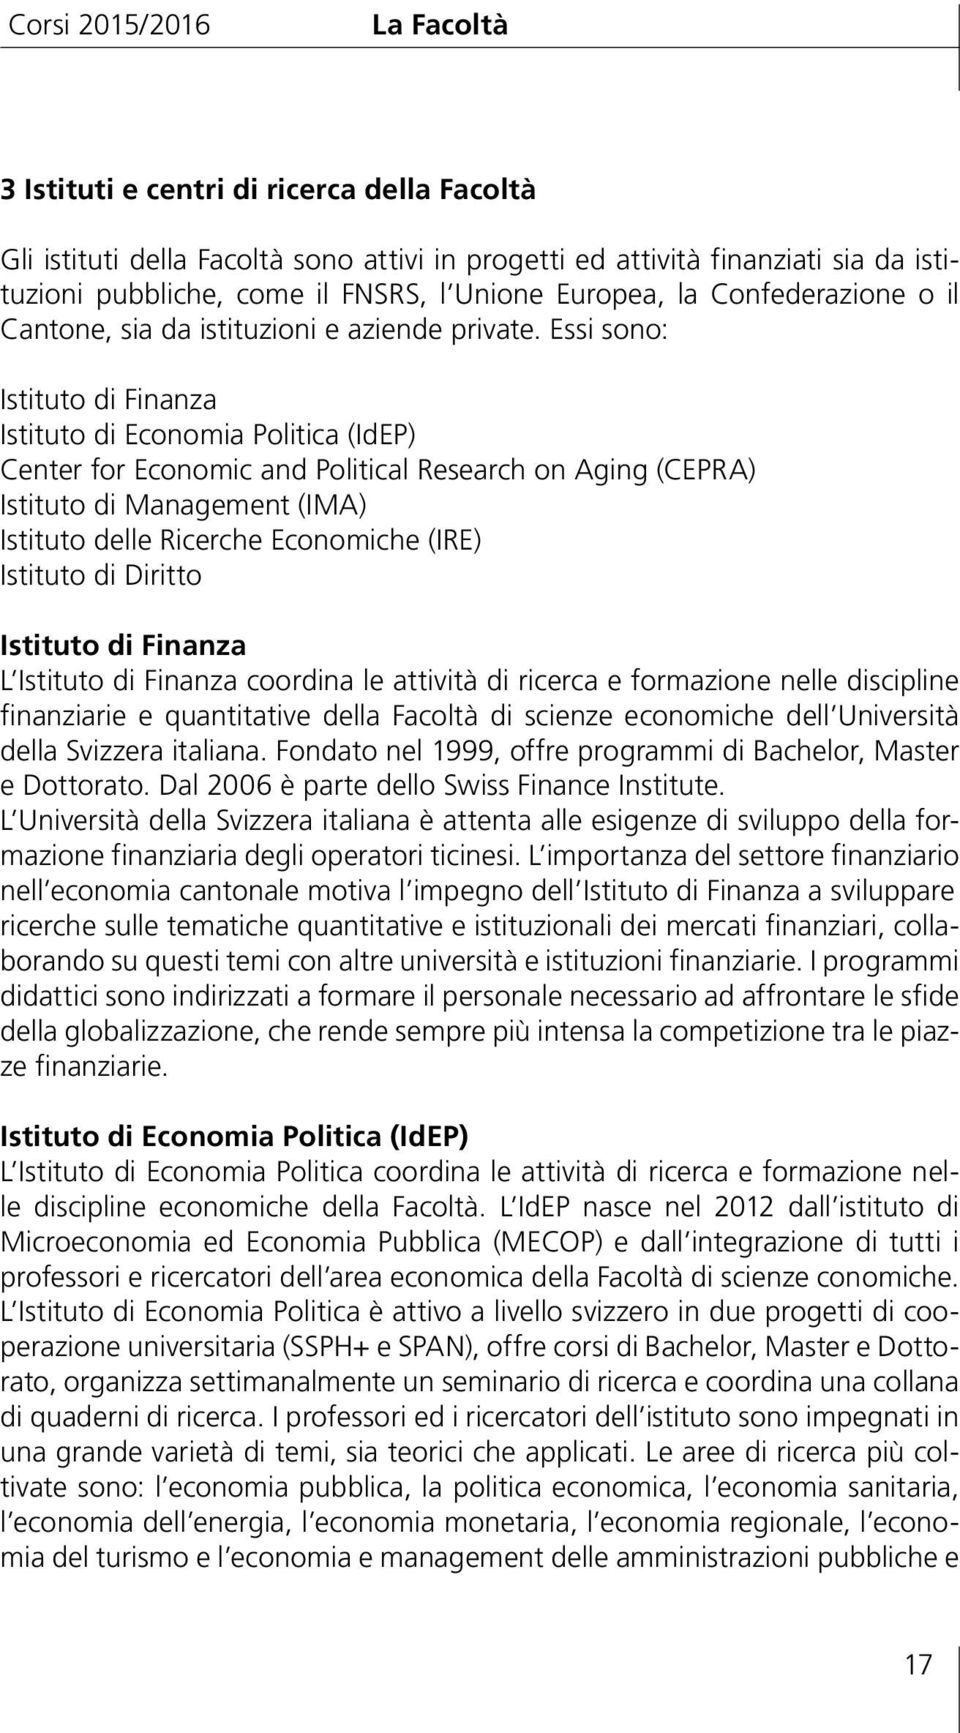 Essi sono: Istituto di Finanza Istituto di Economia Politica (IdEP) Center for Economic and Political Research on Aging (CEPRA) Istituto di Management (IMA) Istituto delle Ricerche Economiche (IRE)